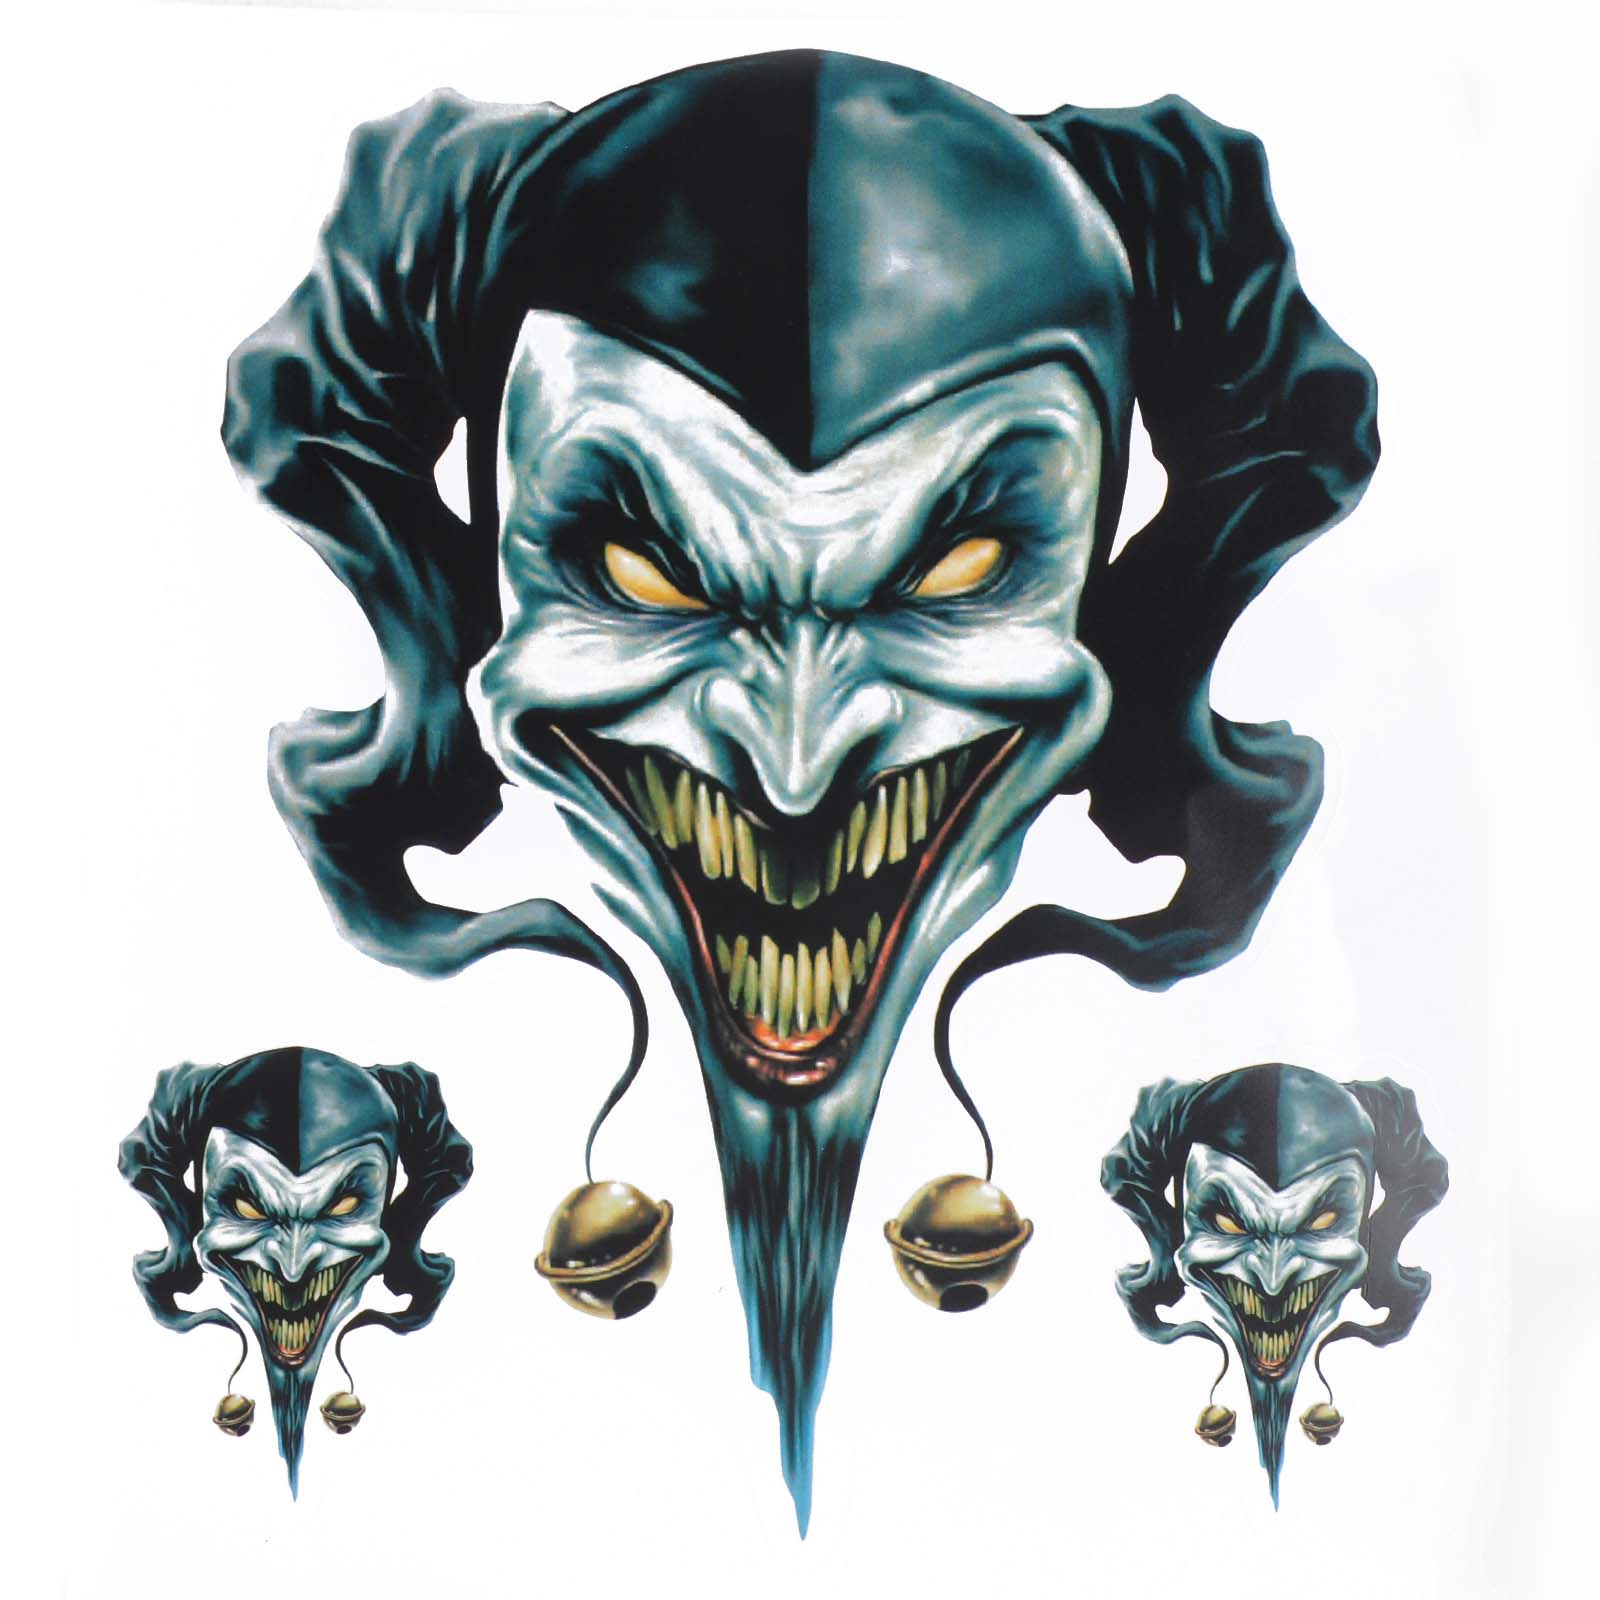 Us 2 01 42 off1 sheet halloween motorcycle diy clown jester graphic sticker decal set for motorbike body styling funny sticker decorative in decals